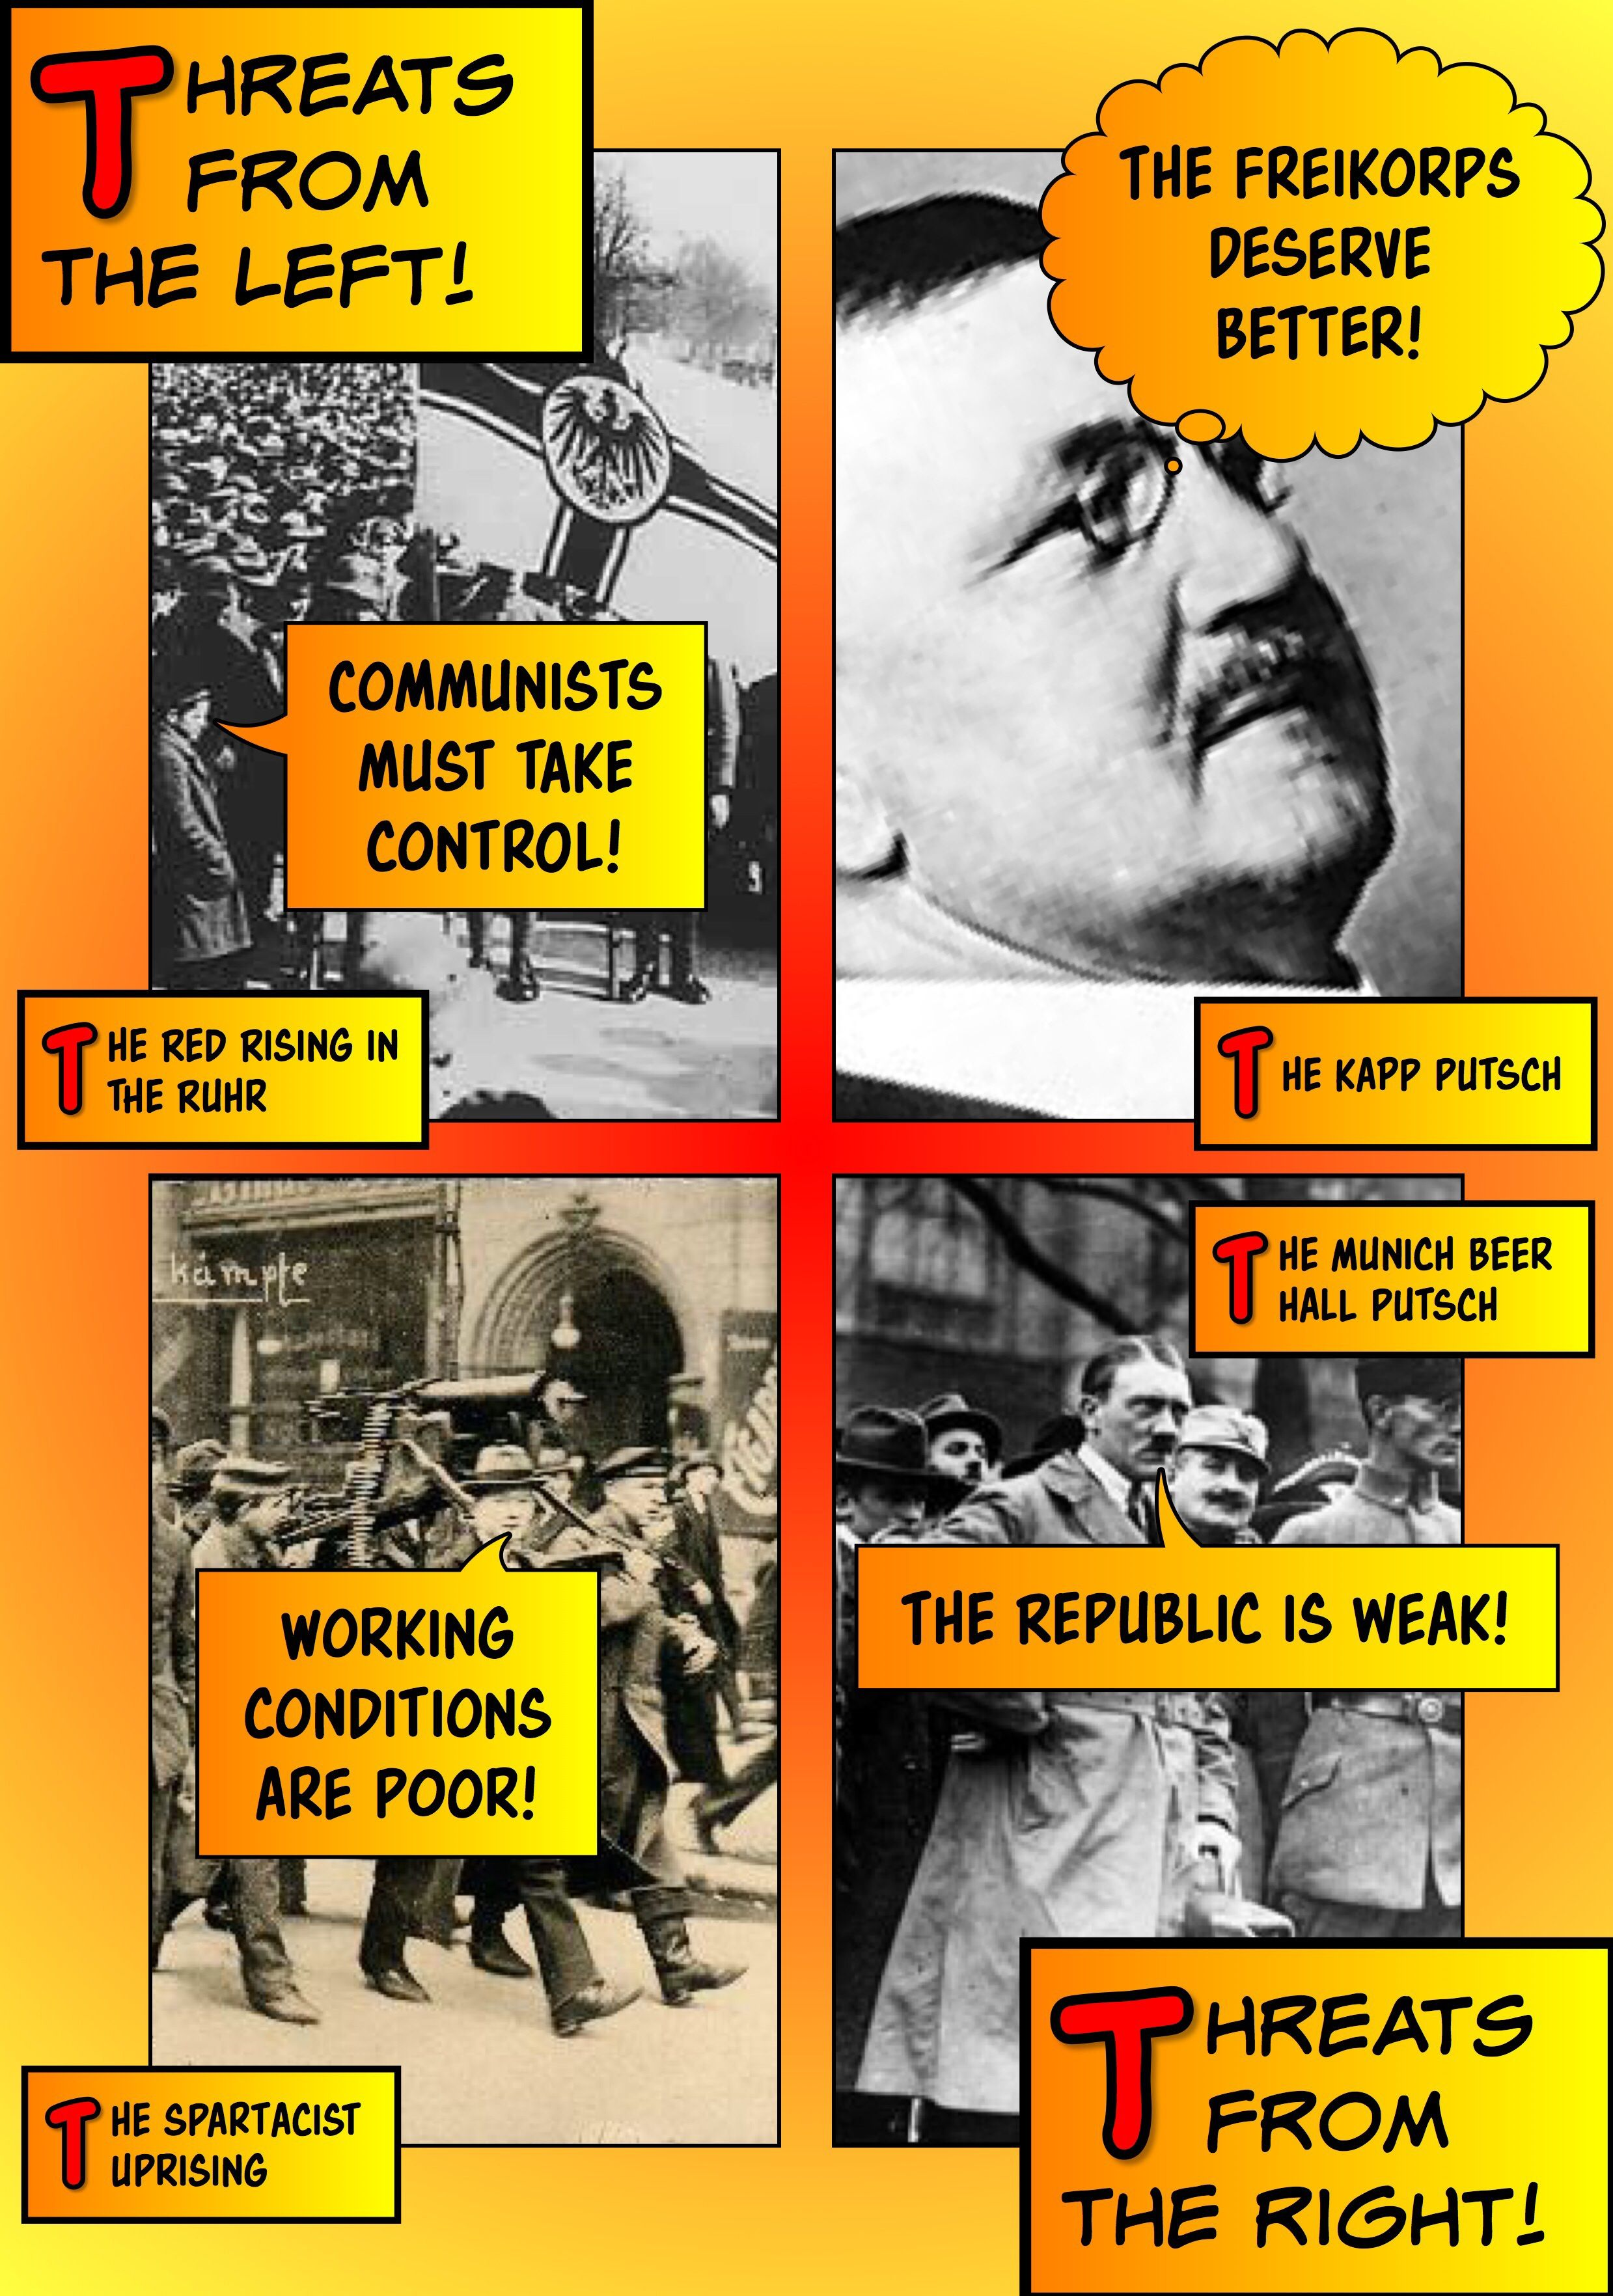 an analysis of the weimar republic in 1919 The weimar republic and the third reich 1918: 1919: feb 6: the national assembly (elected on jan 19) meets in weimar because berlin is too violent a government of the weimar coalition (spd, ddp, center) is formed with.